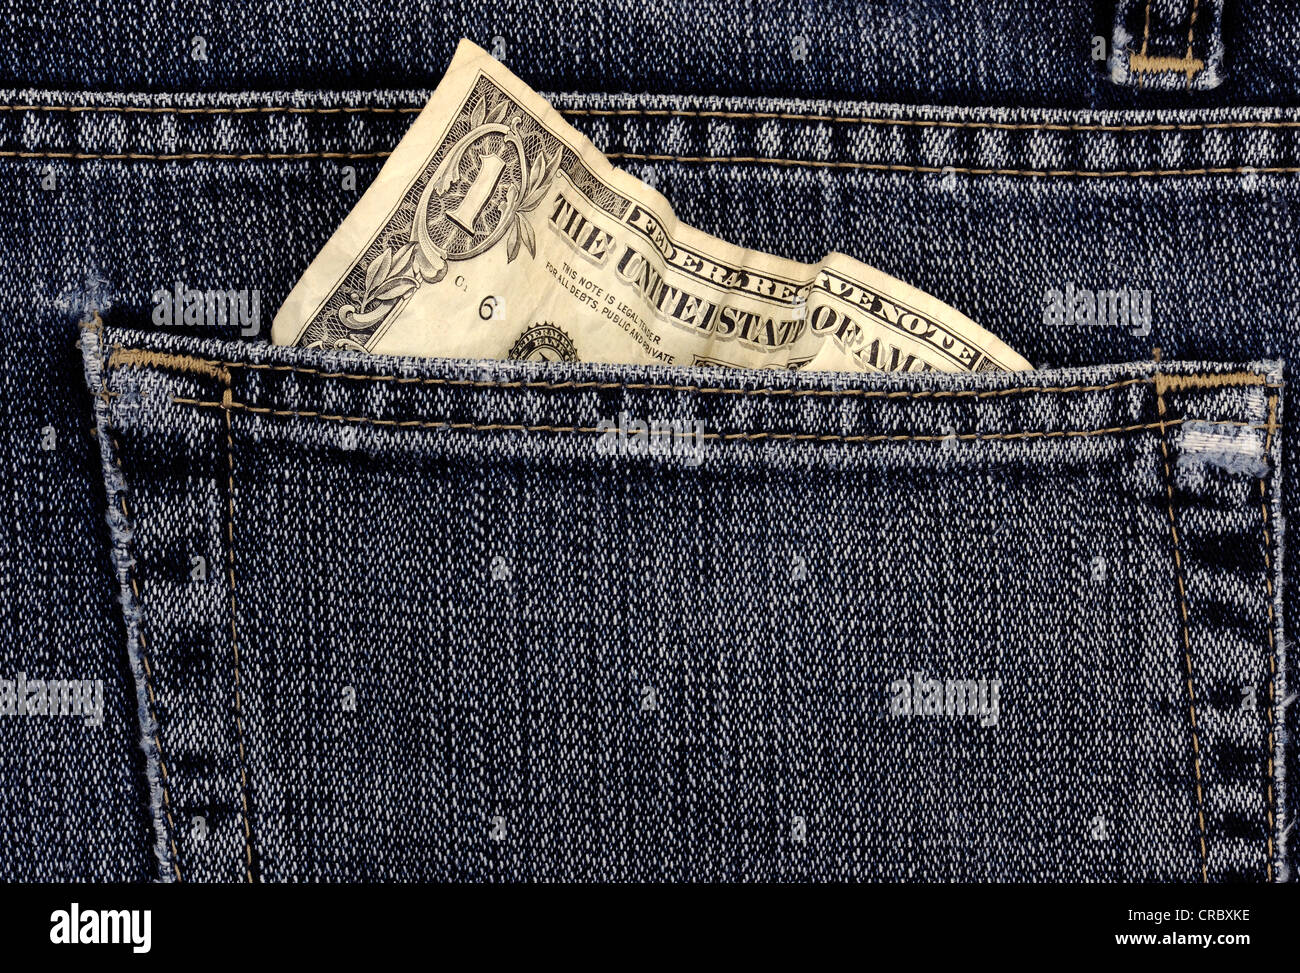 Crumpled 1 US dollar bill in a jeans pocket - Stock Image